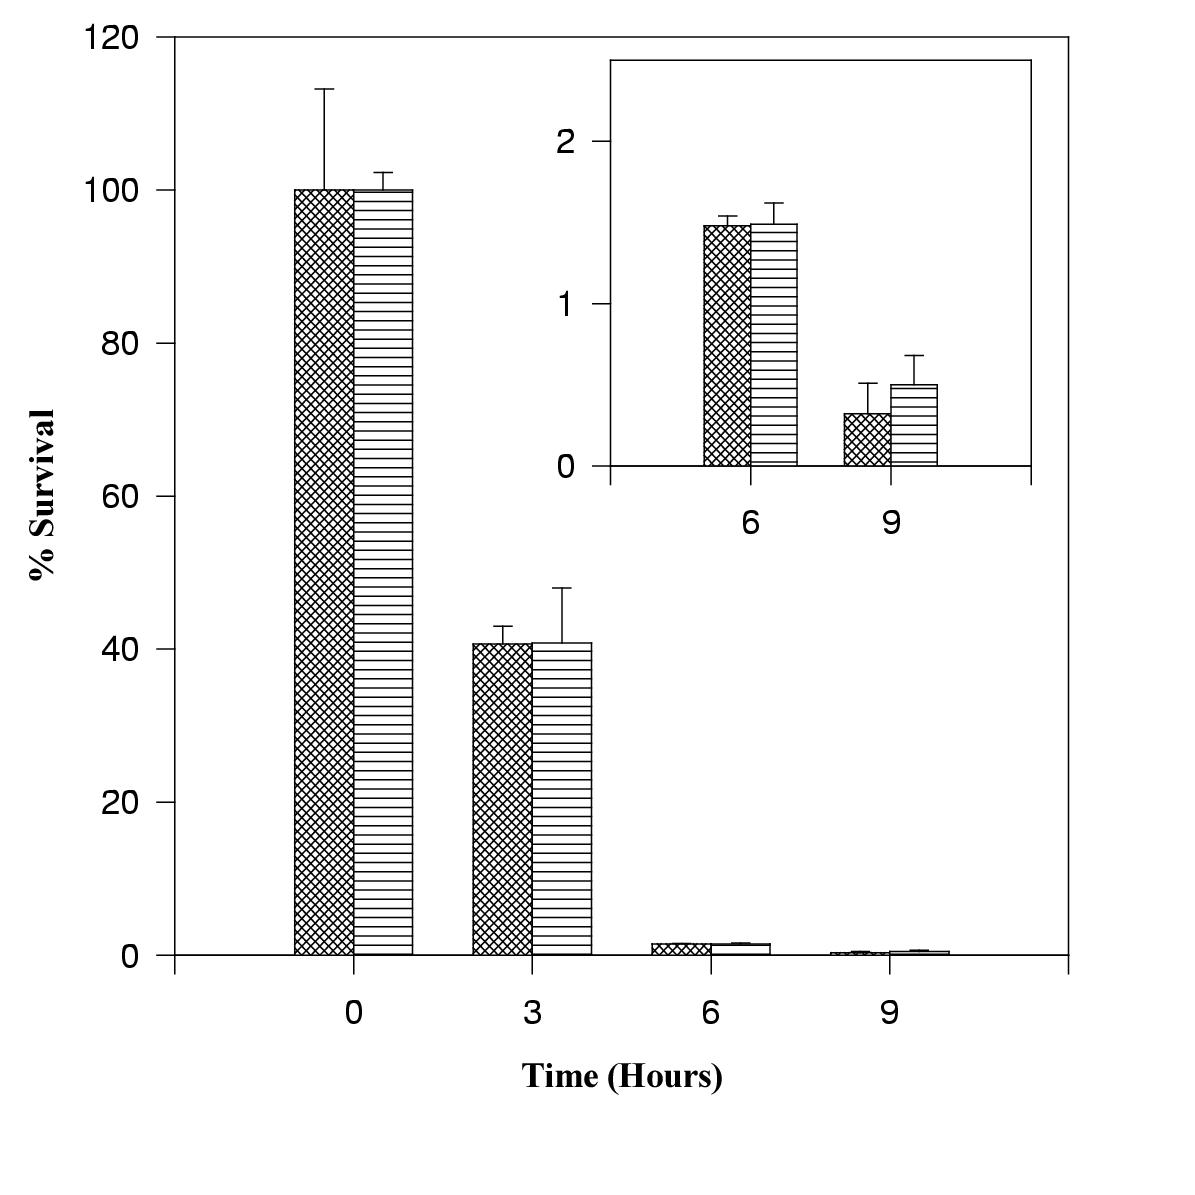 http://static-content.springer.com/image/art%3A10.1186%2F1471-2180-1-26/MediaObjects/12866_2001_Article_26_Fig2_HTML.jpg